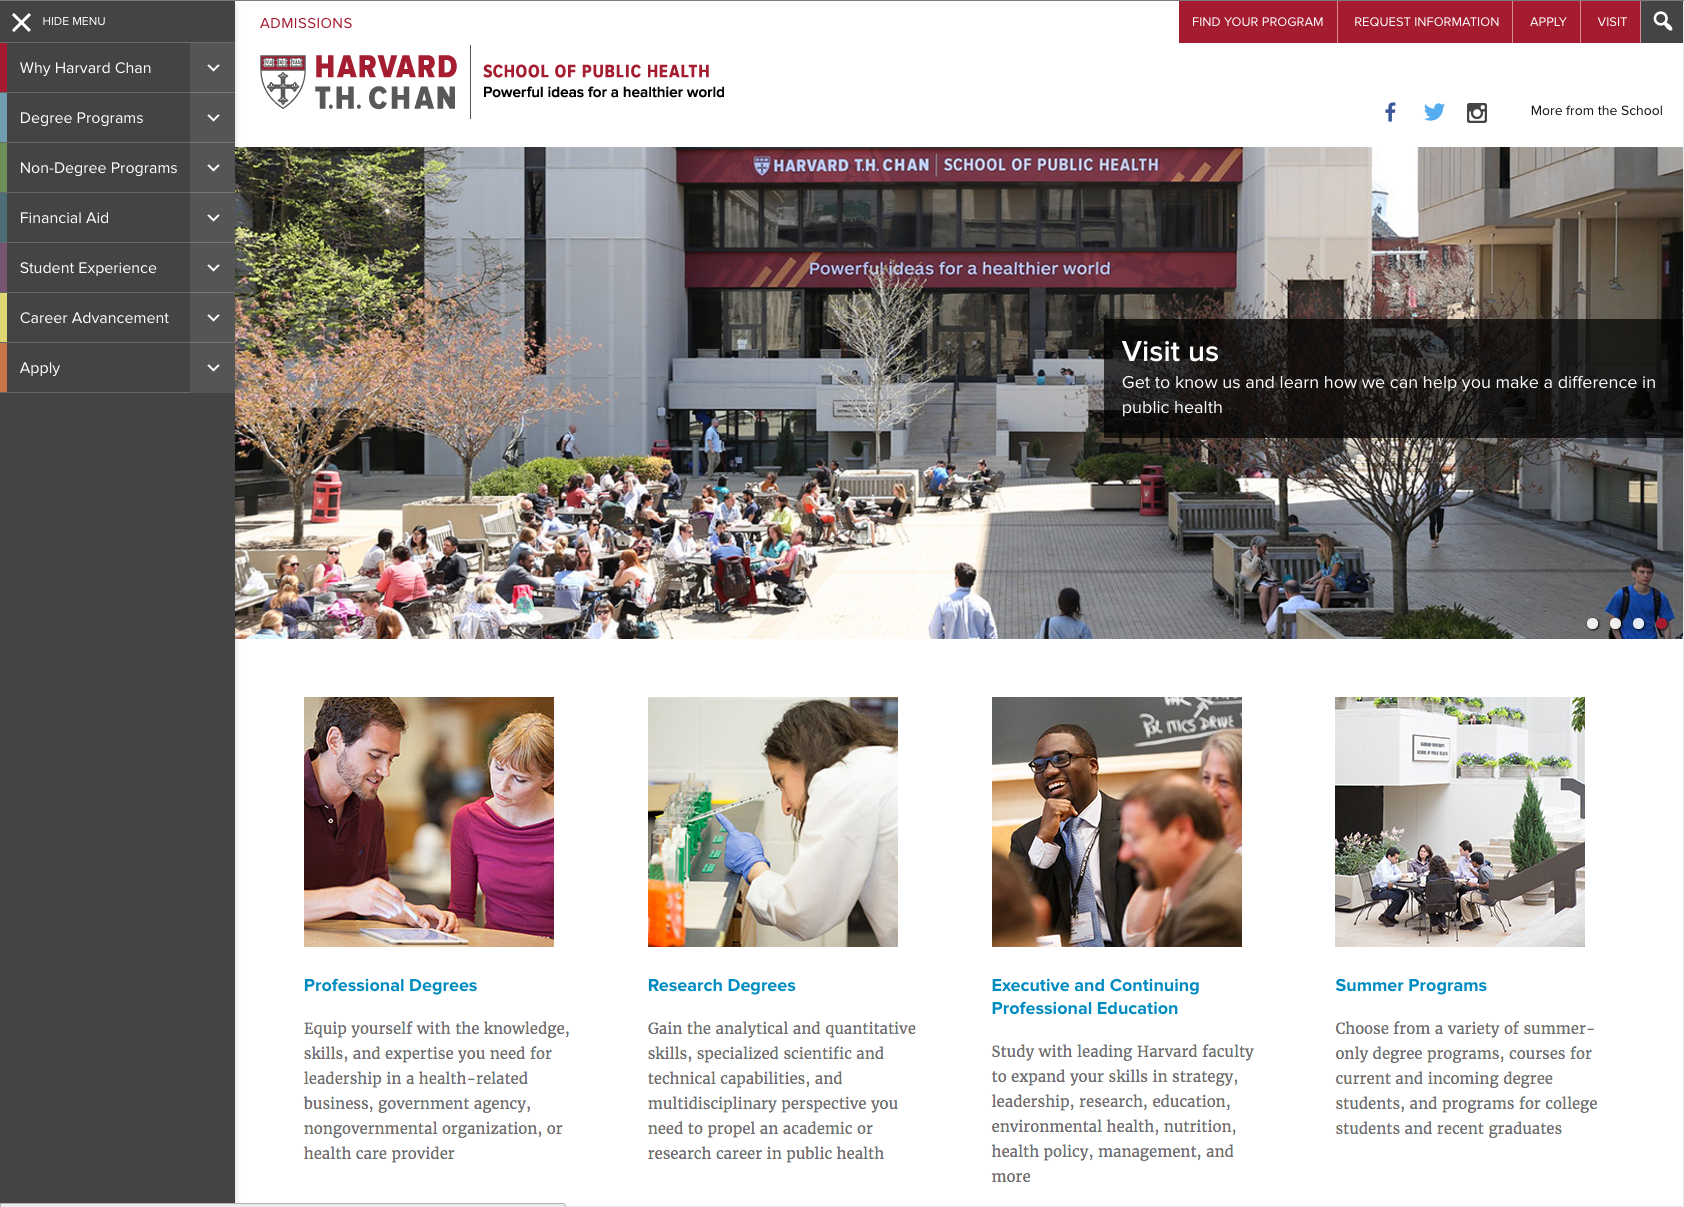 HARTHC - ADMISSIONS.png